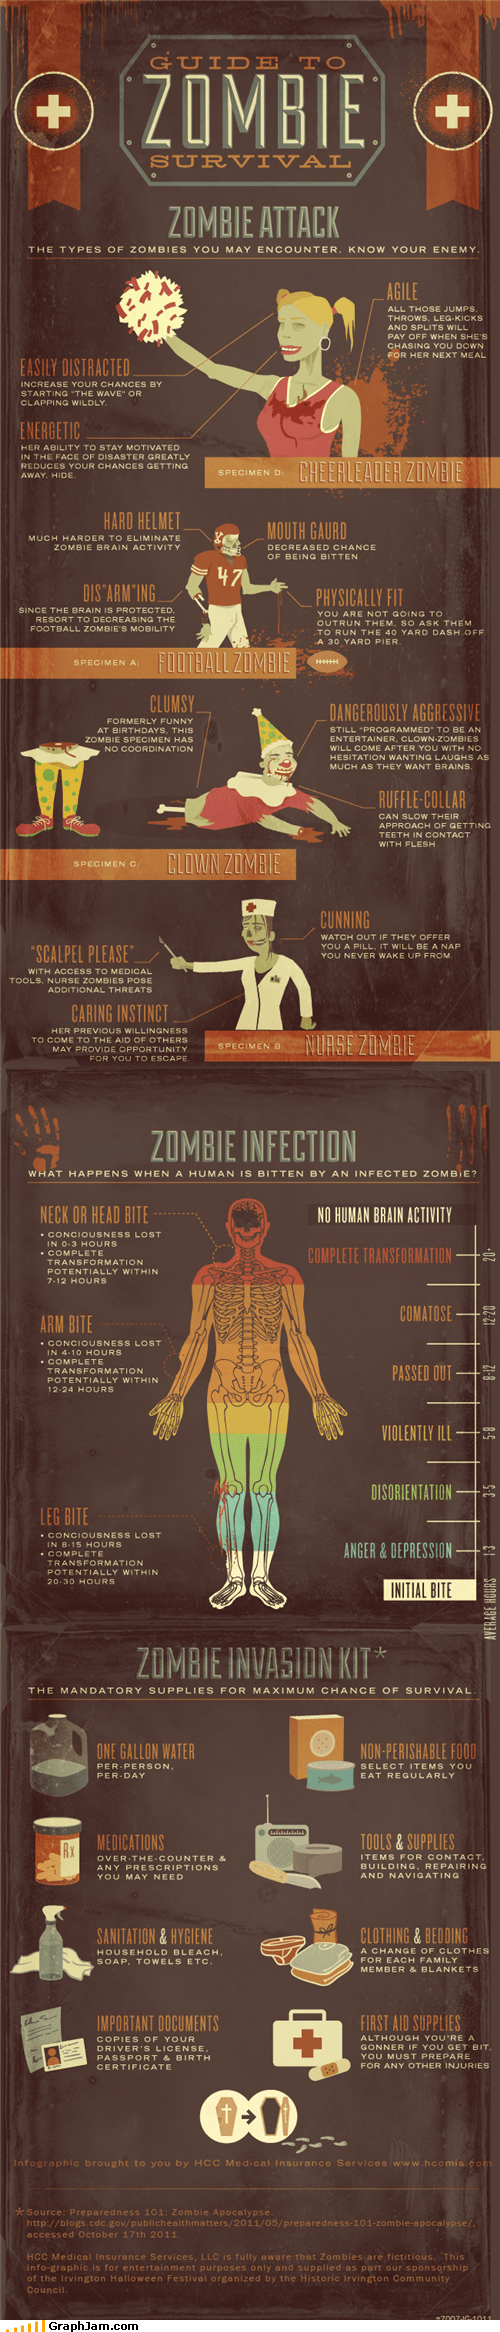 best of week infographic preparation survival zombie zombie apocalypse - 5364643328